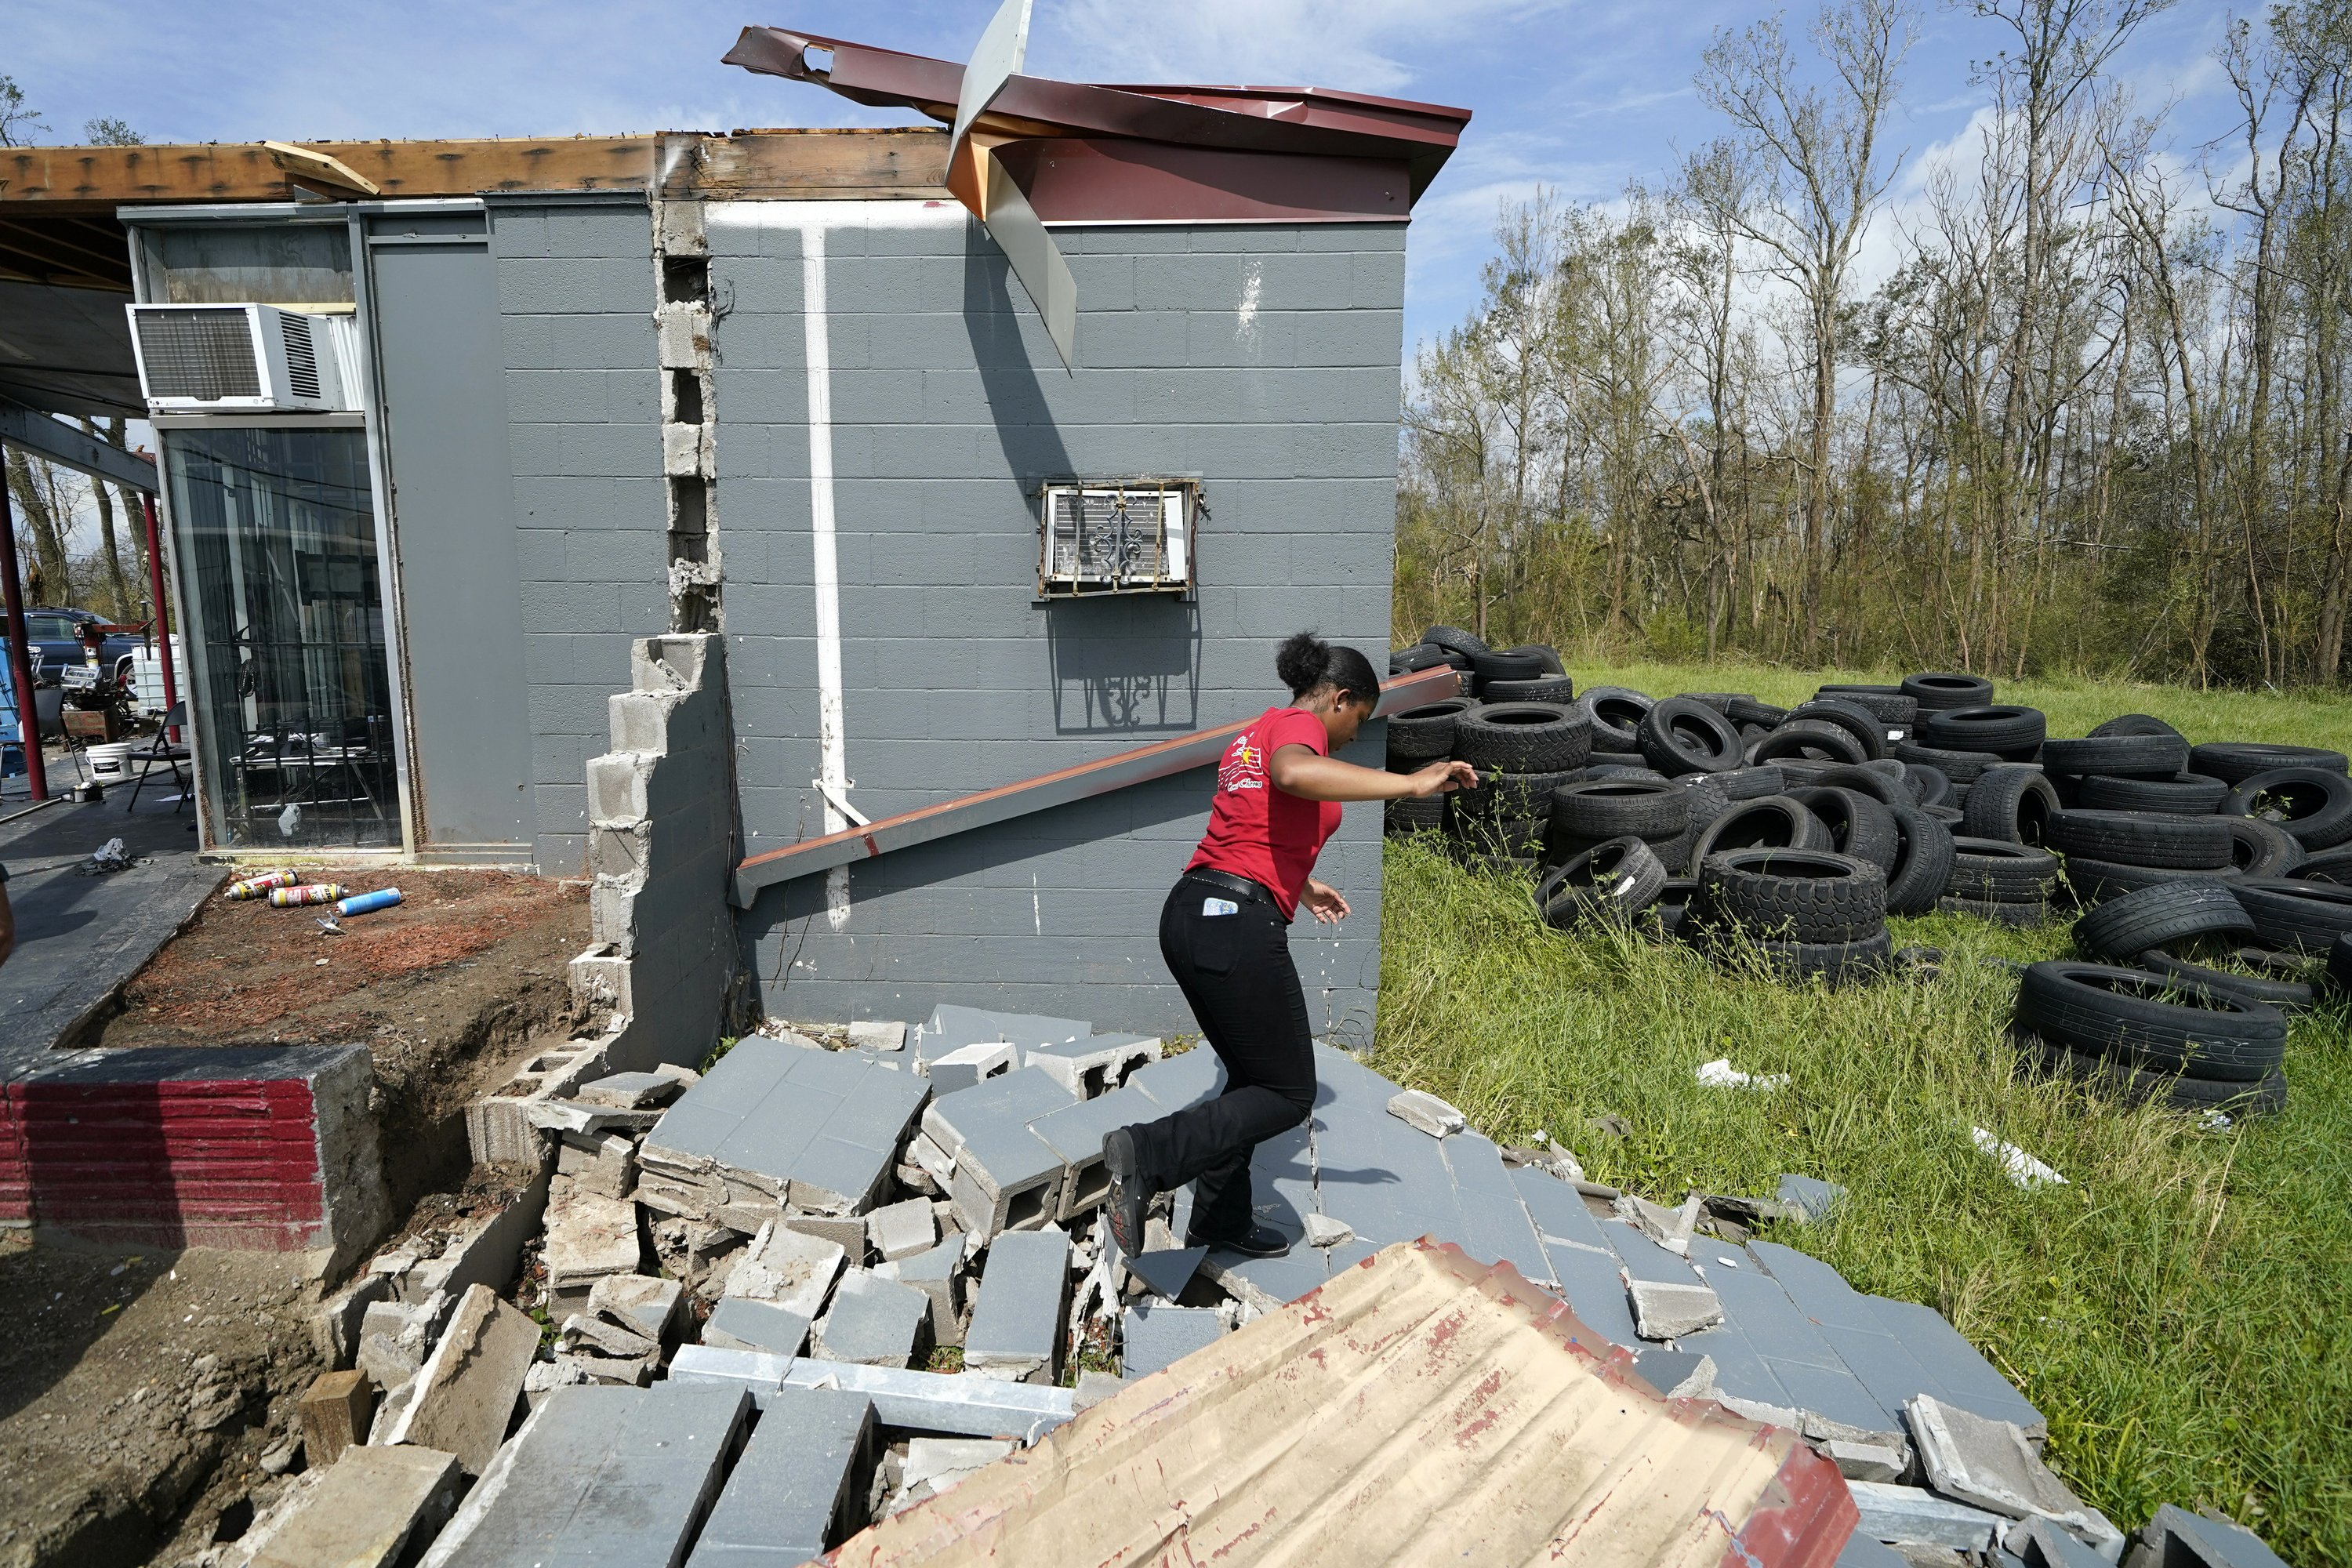 In aftermath of Hurricane Laura, residents worry about help